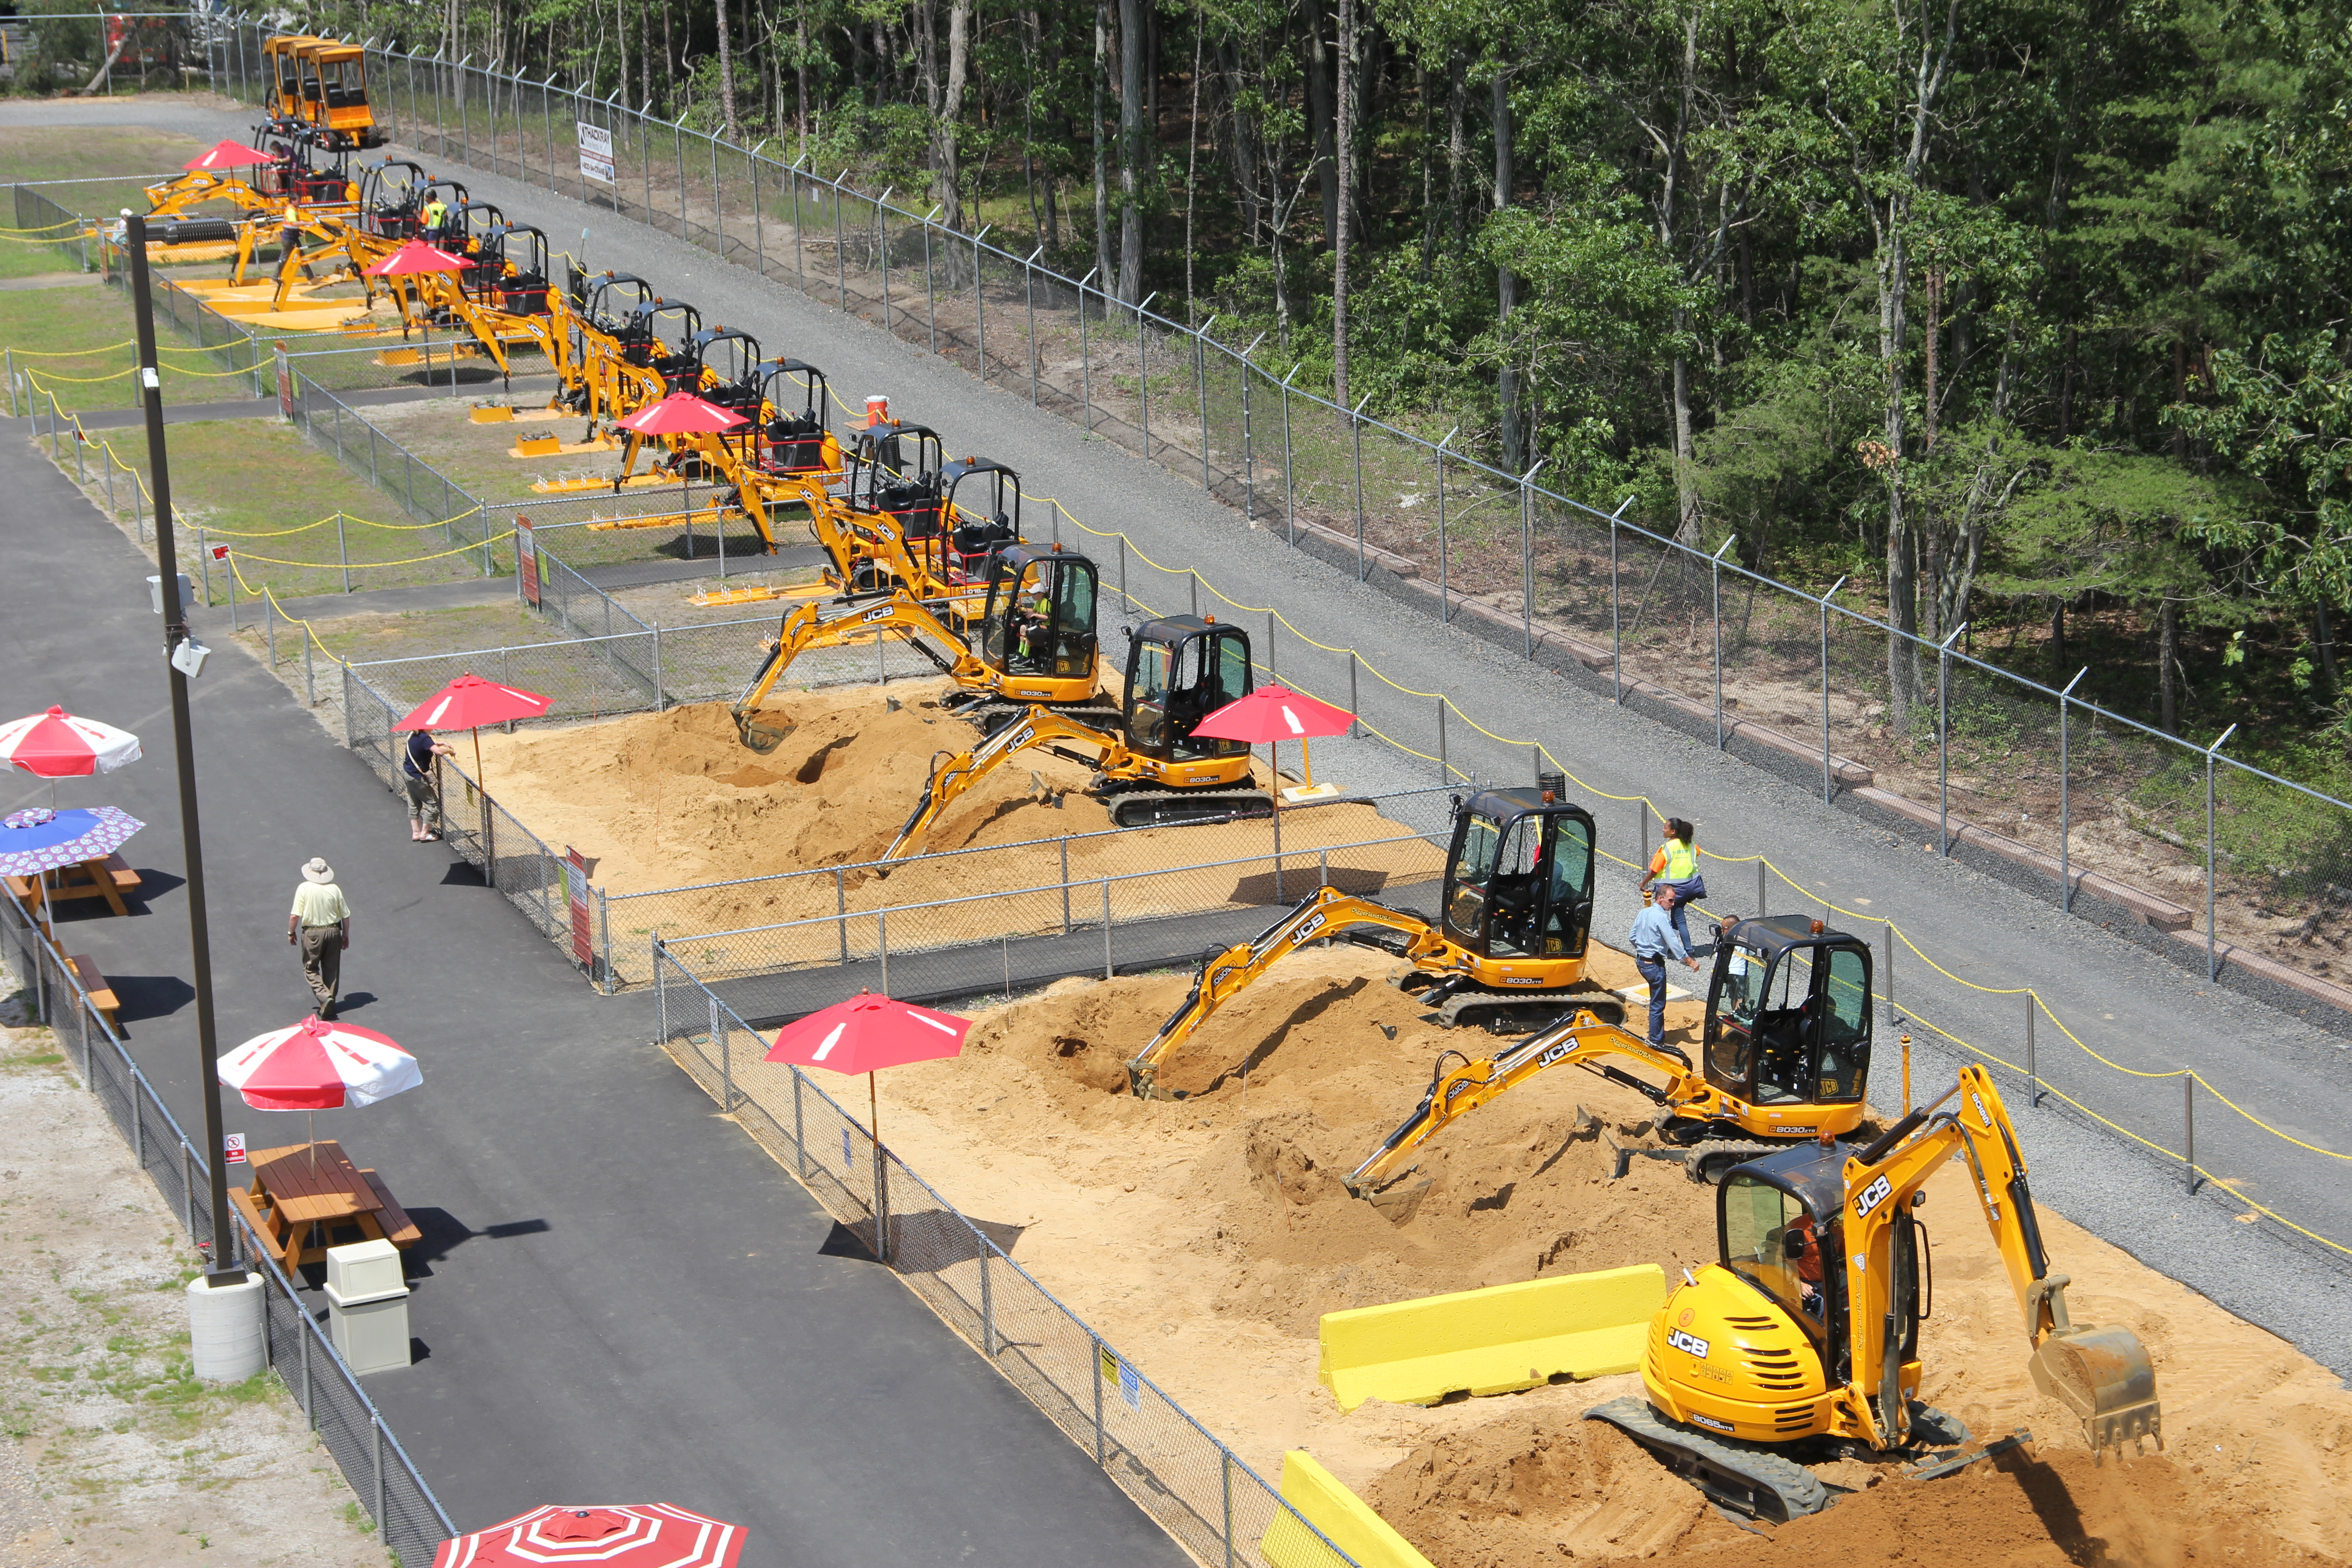 diggerland usa the roarbotsthe roarbots